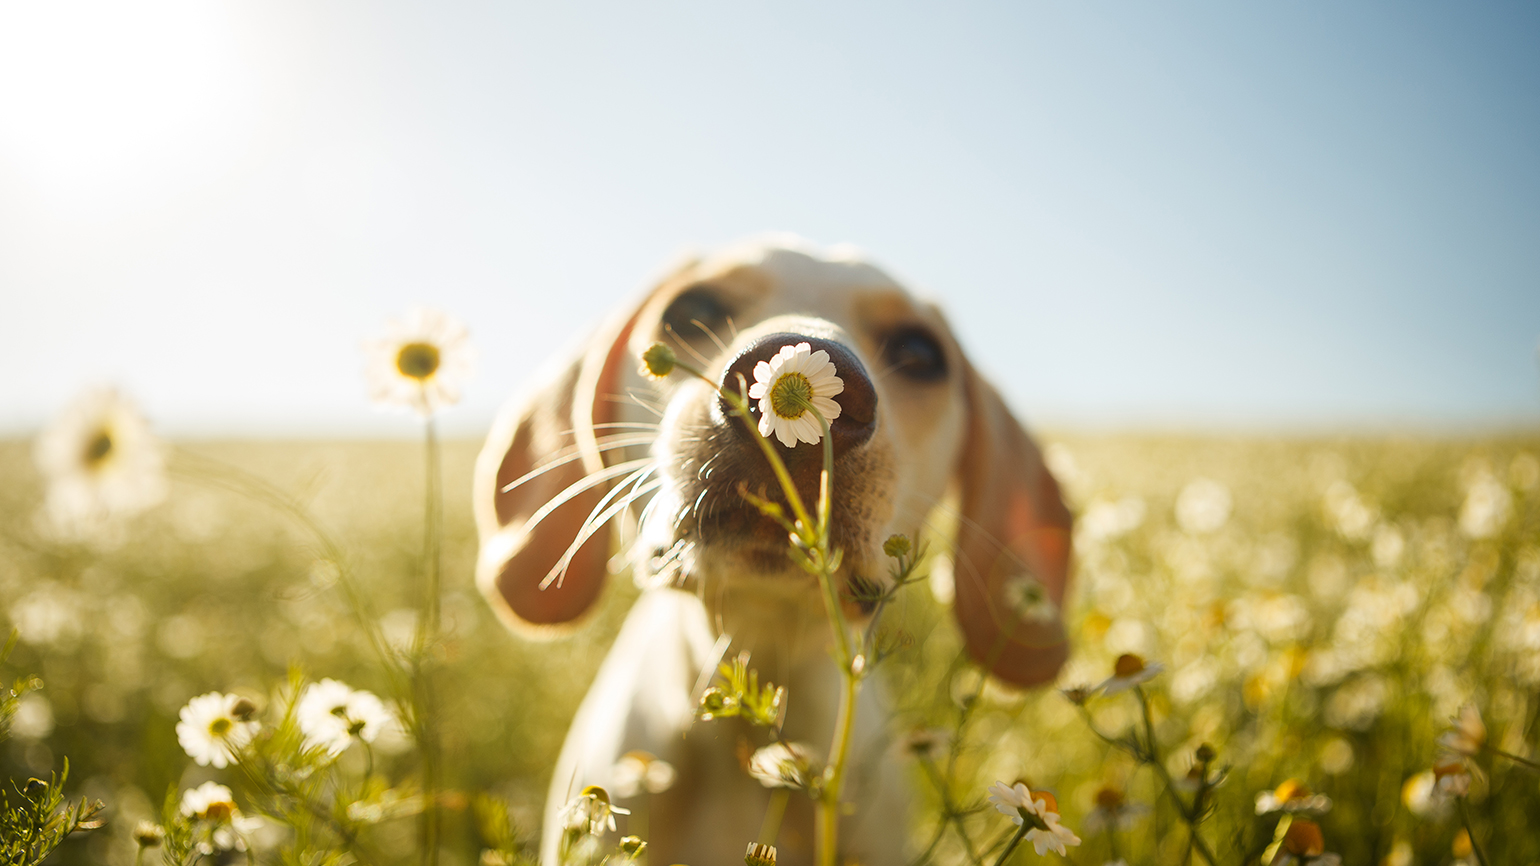 A dog pauses to smell a flower on a spring day